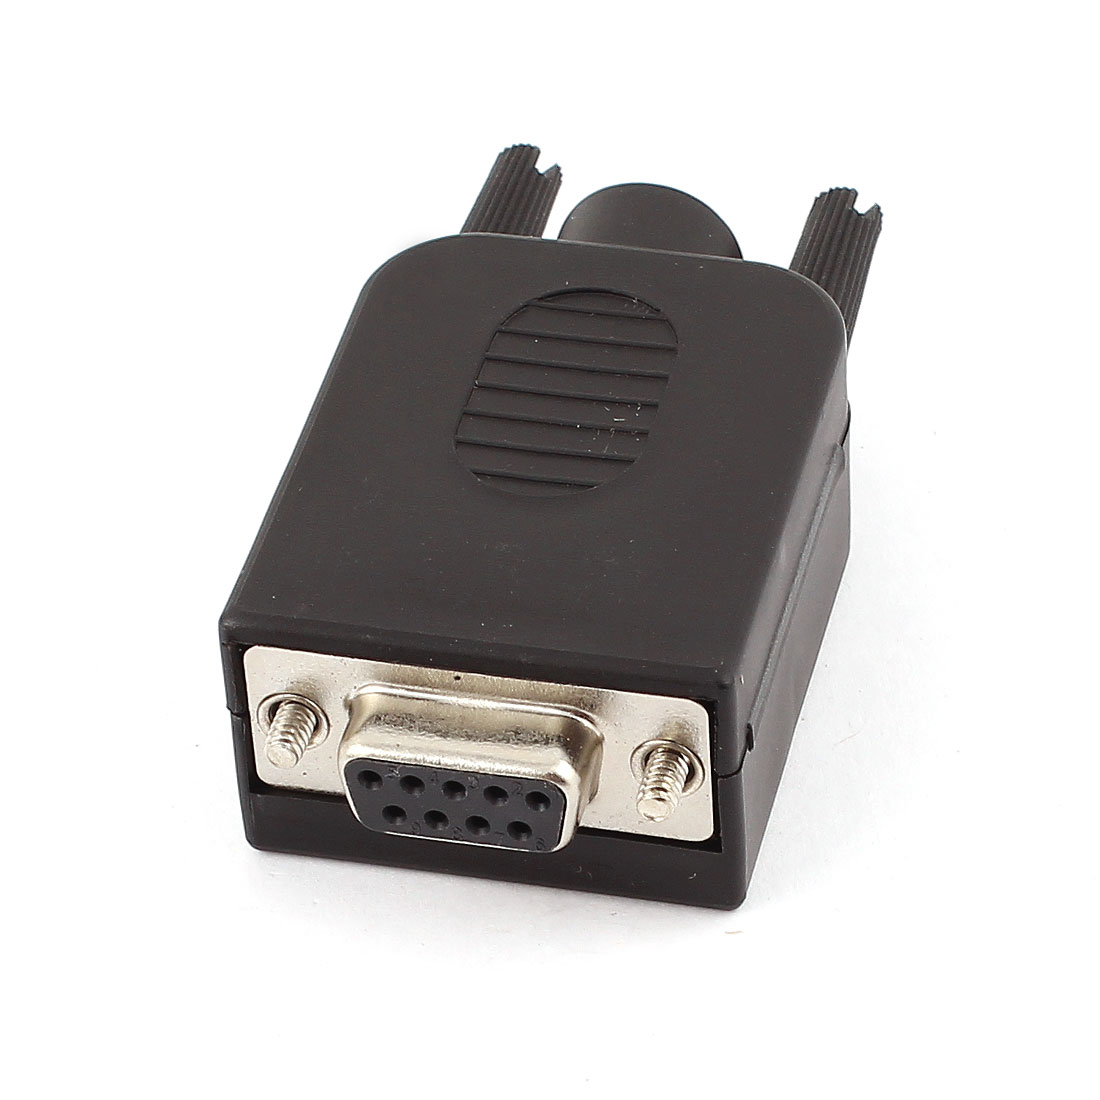 DB9-M9 Stable DB9 Connector 9Pin Female Adapter Terminal Converter w Case